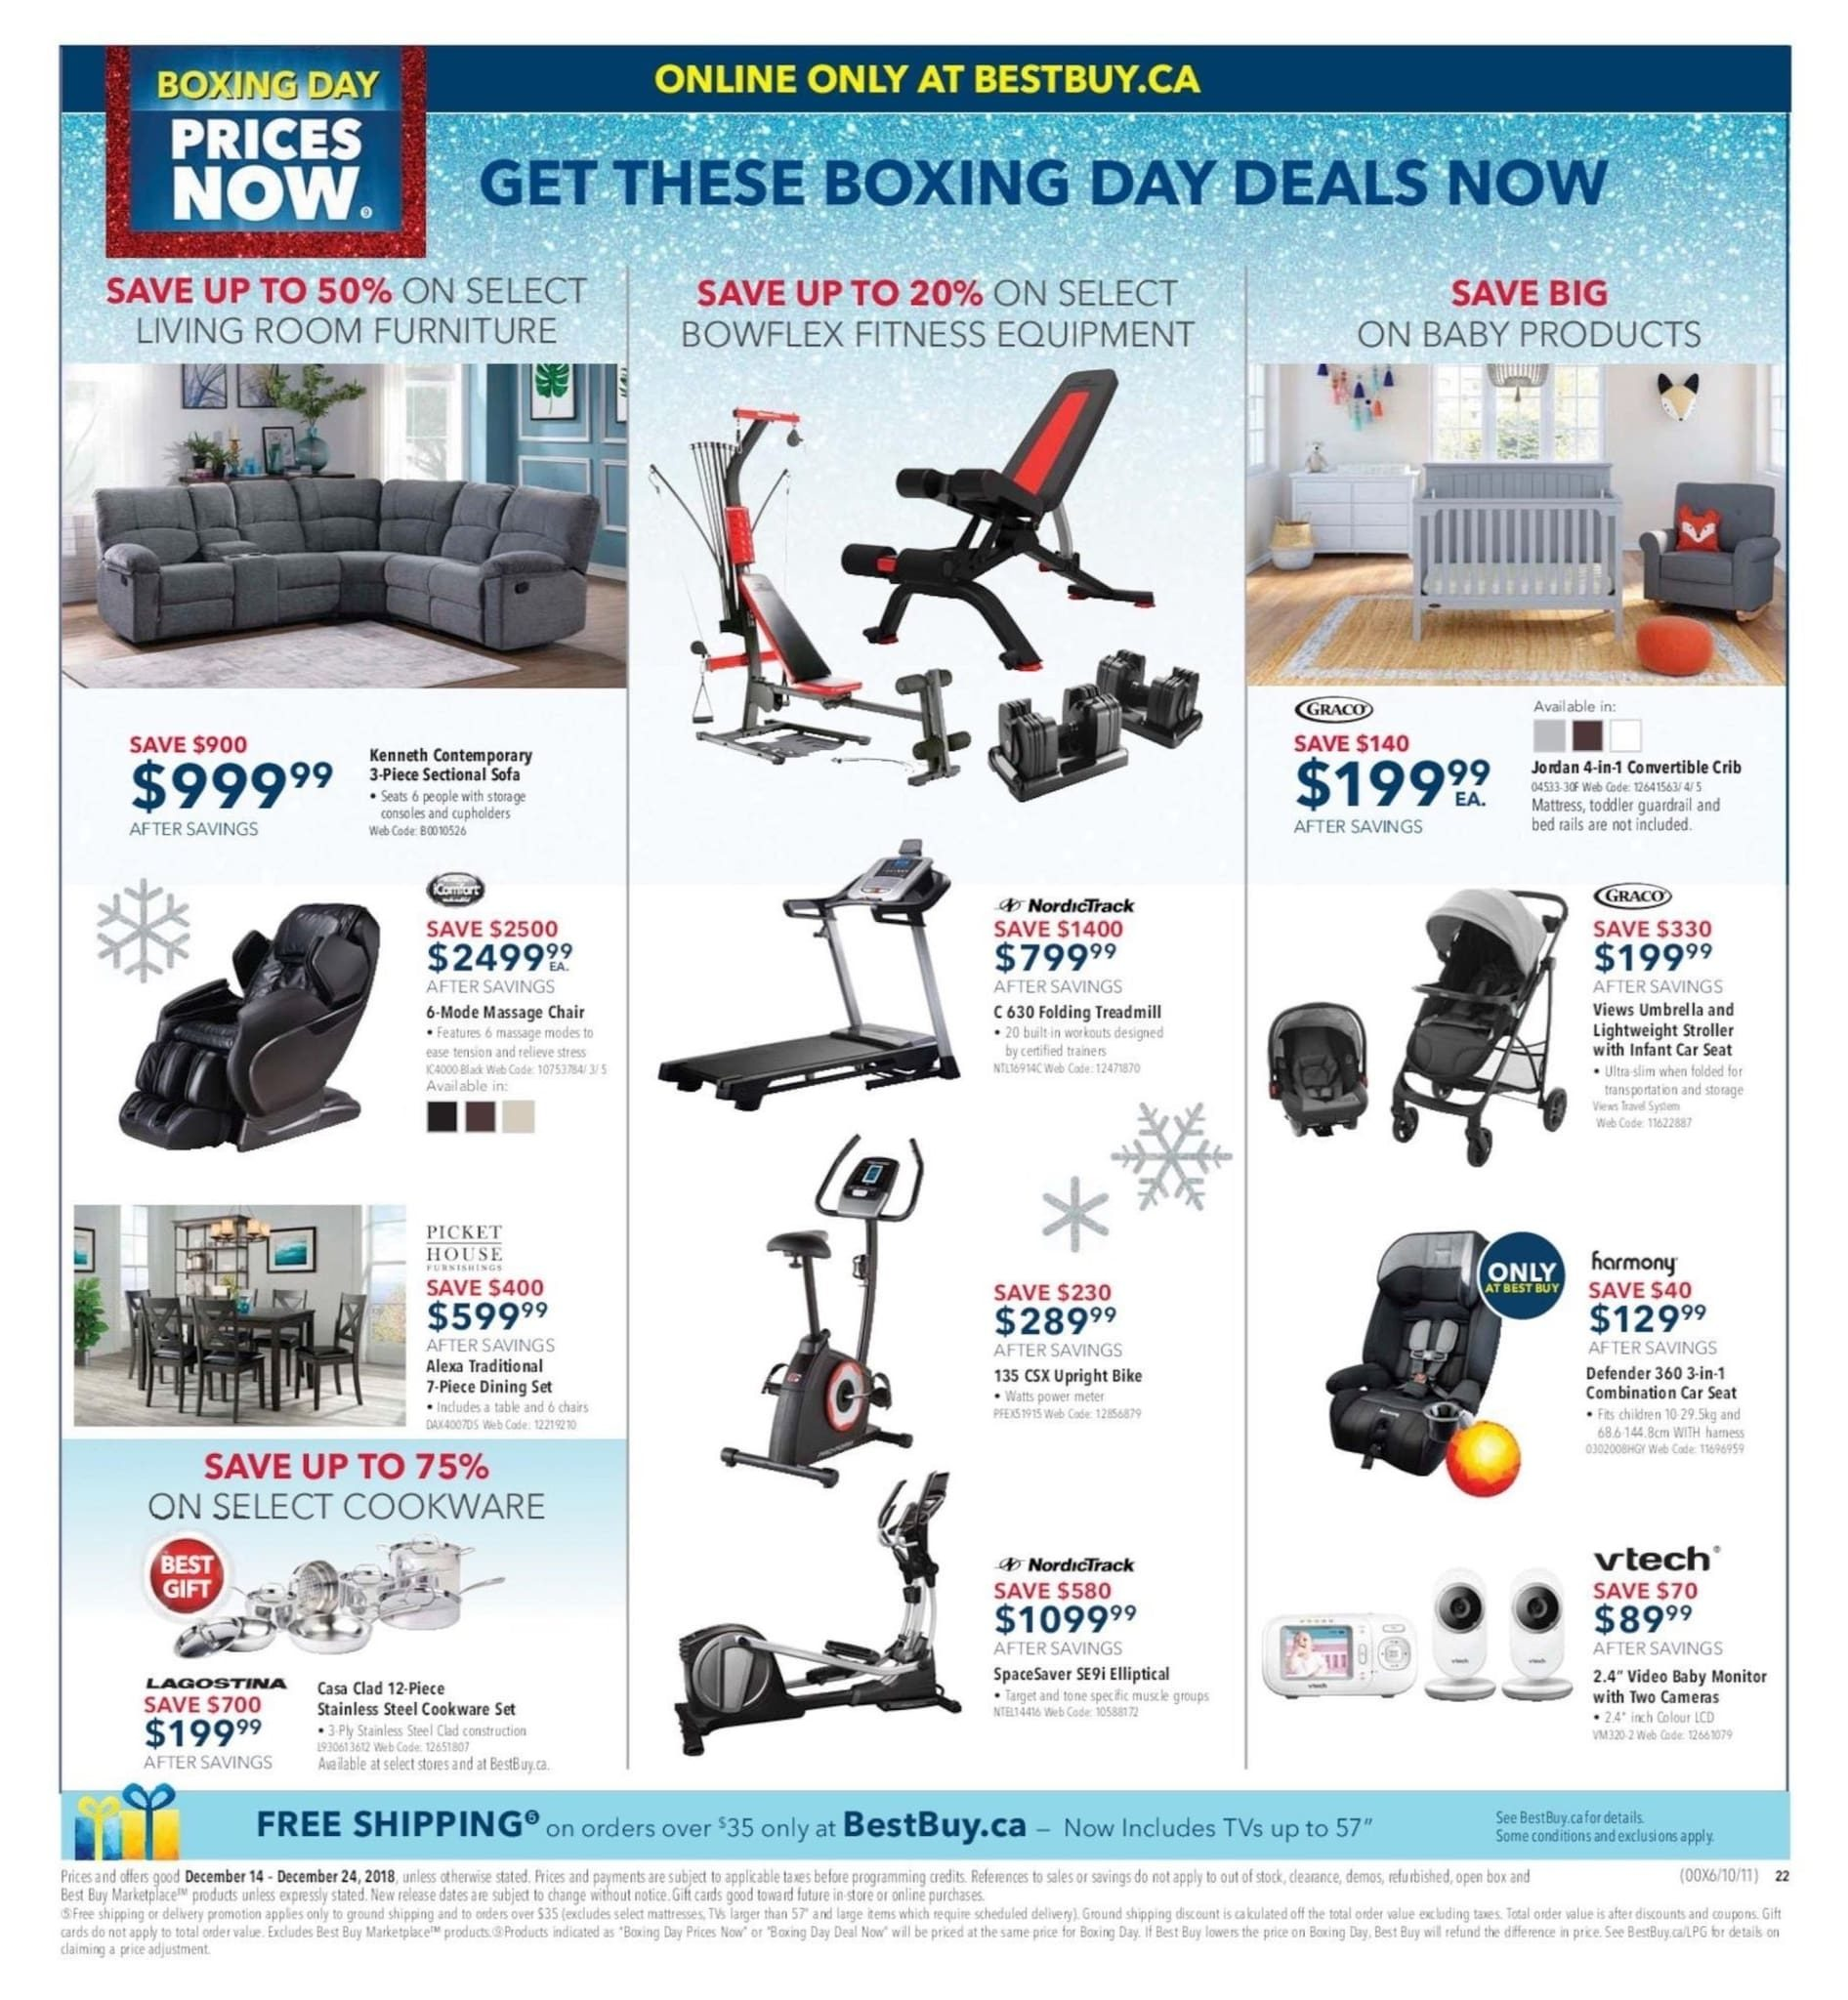 1113cb9c927 Best Buy Weekly Flyer - Weekly - Boxing Day Prices Now - Dec 14 – 24 -  RedFlagDeals.com